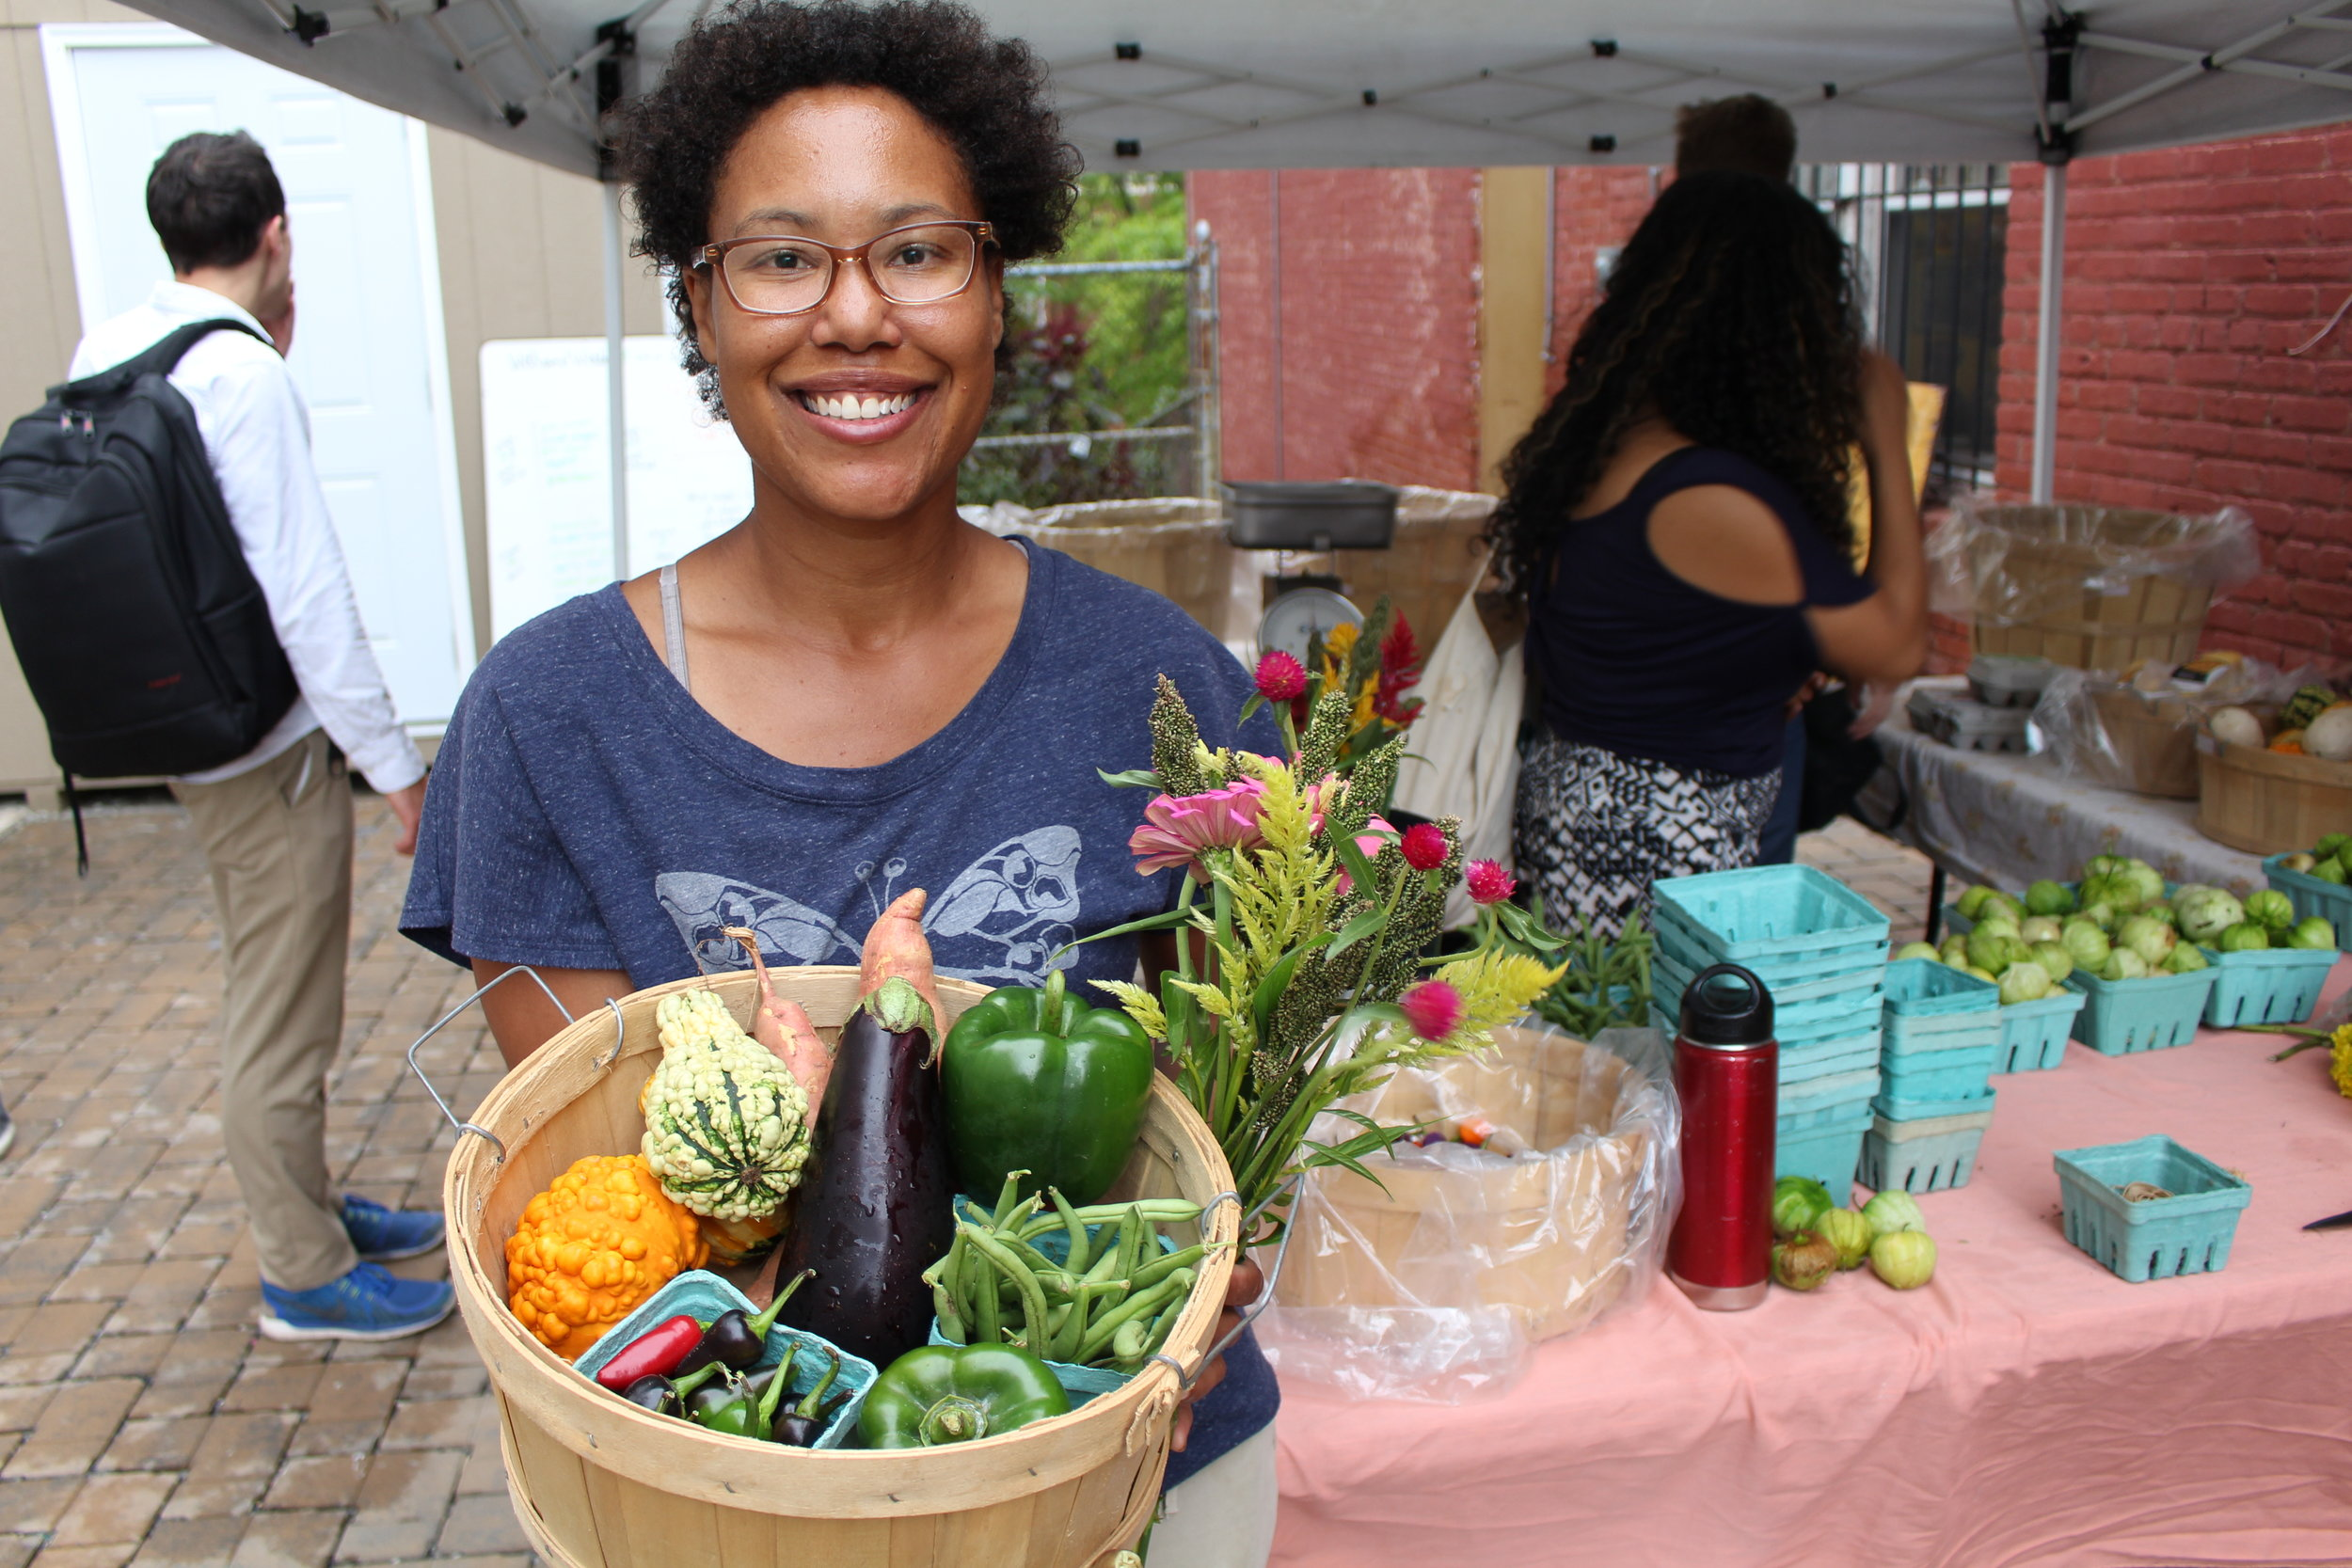 Gail Taylor started the trend for urban farming in DC.